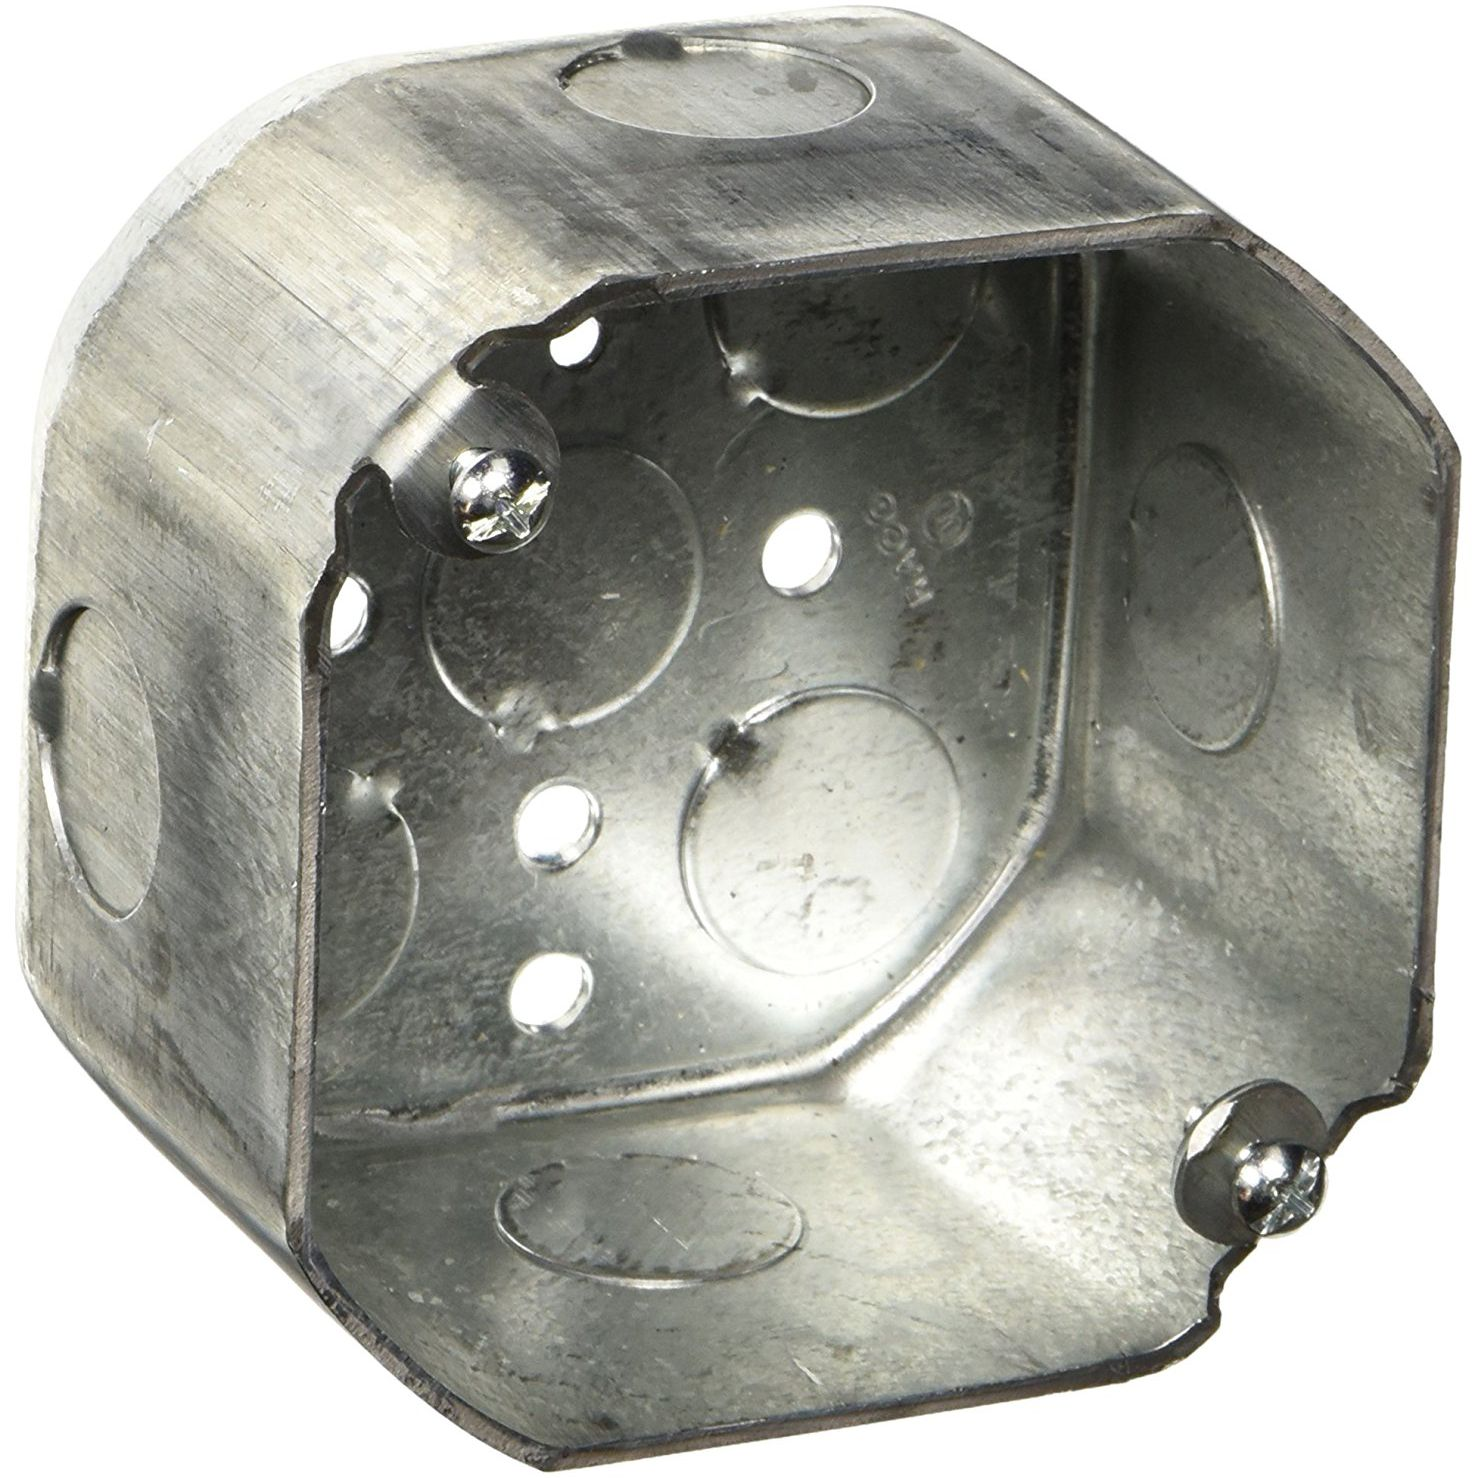 LOT OF 10 NEW STEEL OCTAGON//ROUND ELECTRICAL RECEPTACLE COVER